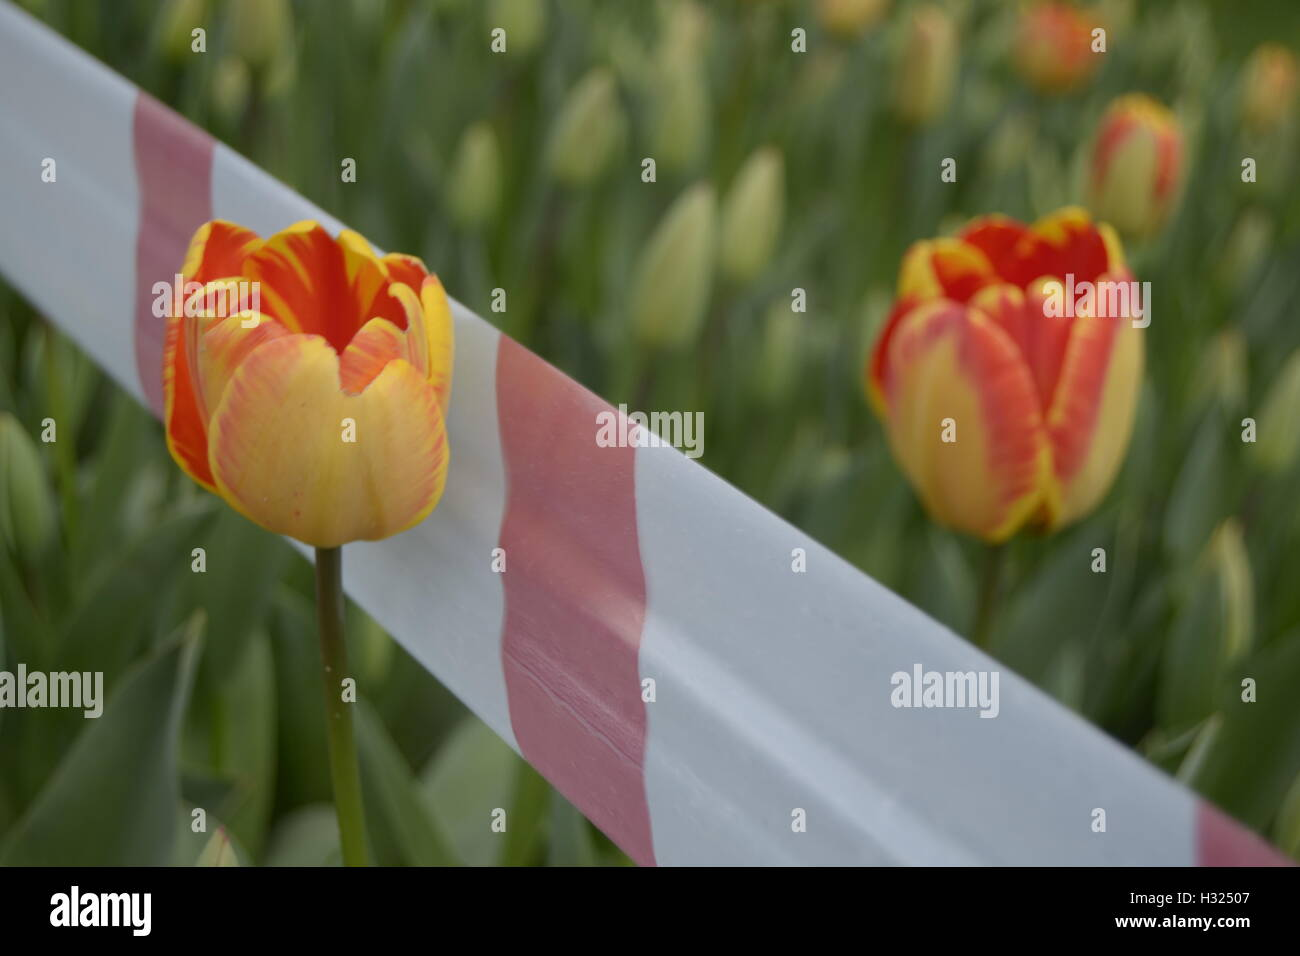 tulip, love, divorce, family, isolate, - Stock Image